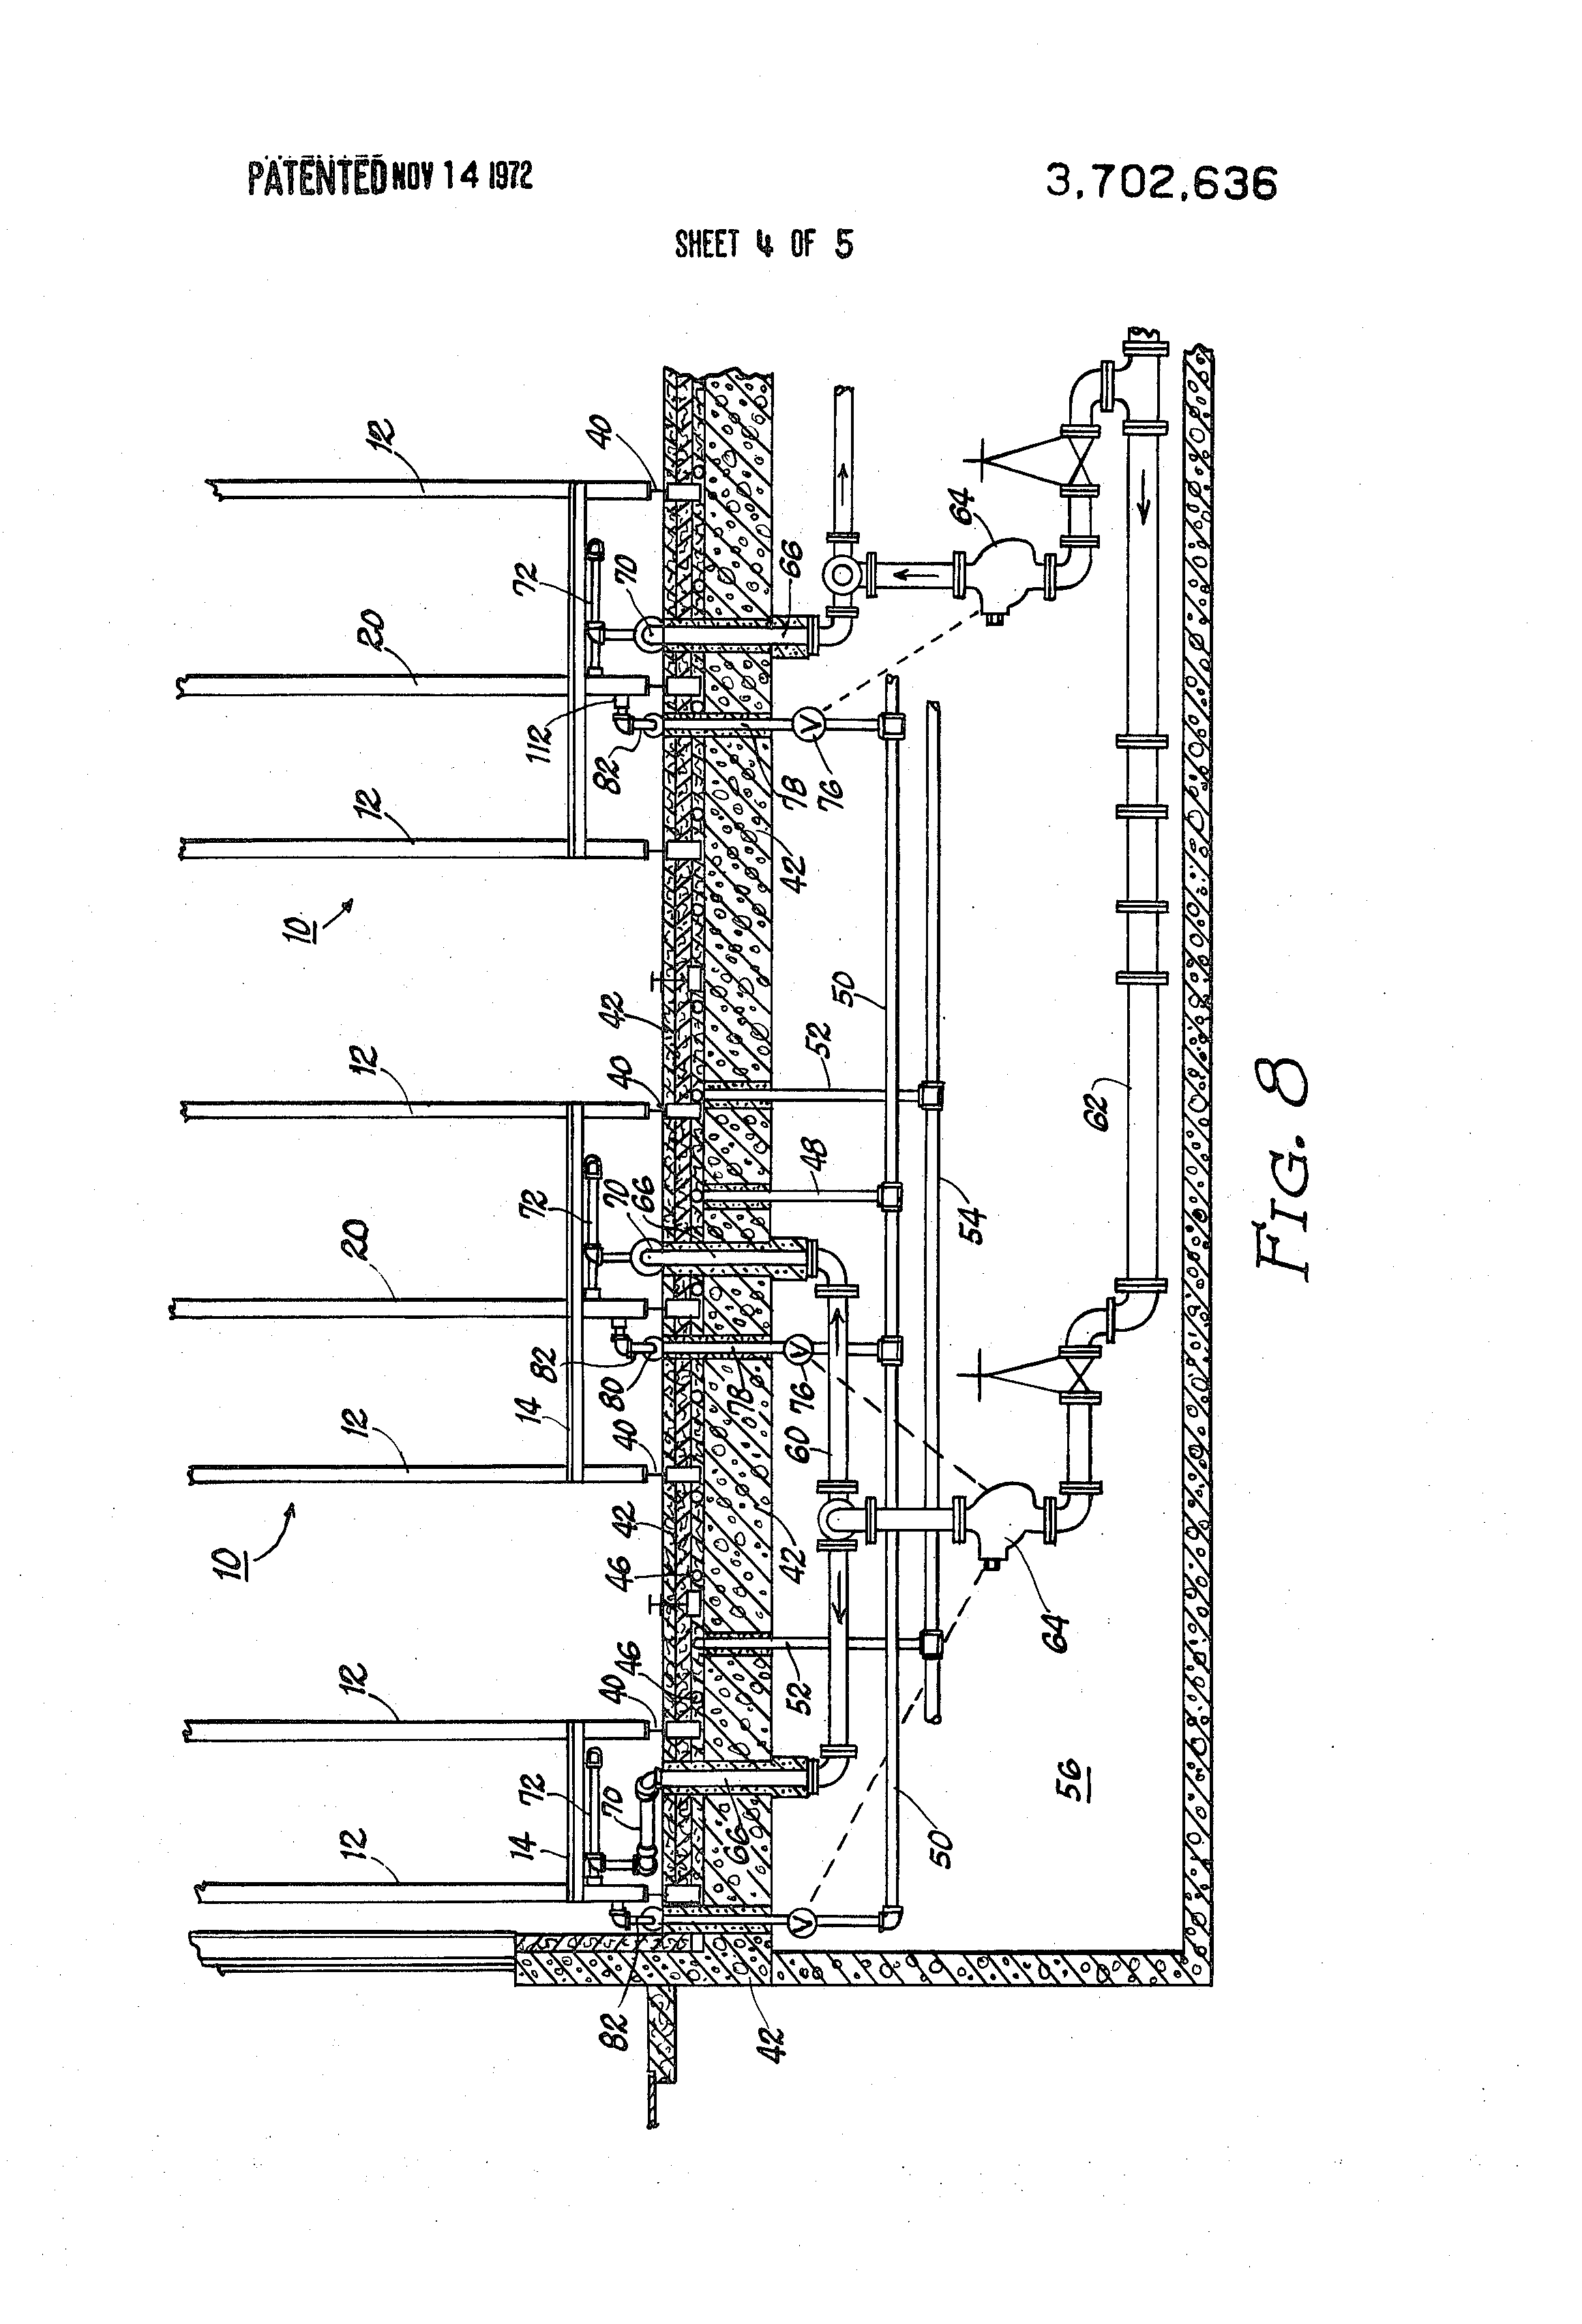 patent us3702636 - antifreeze system for rack sprinkler building